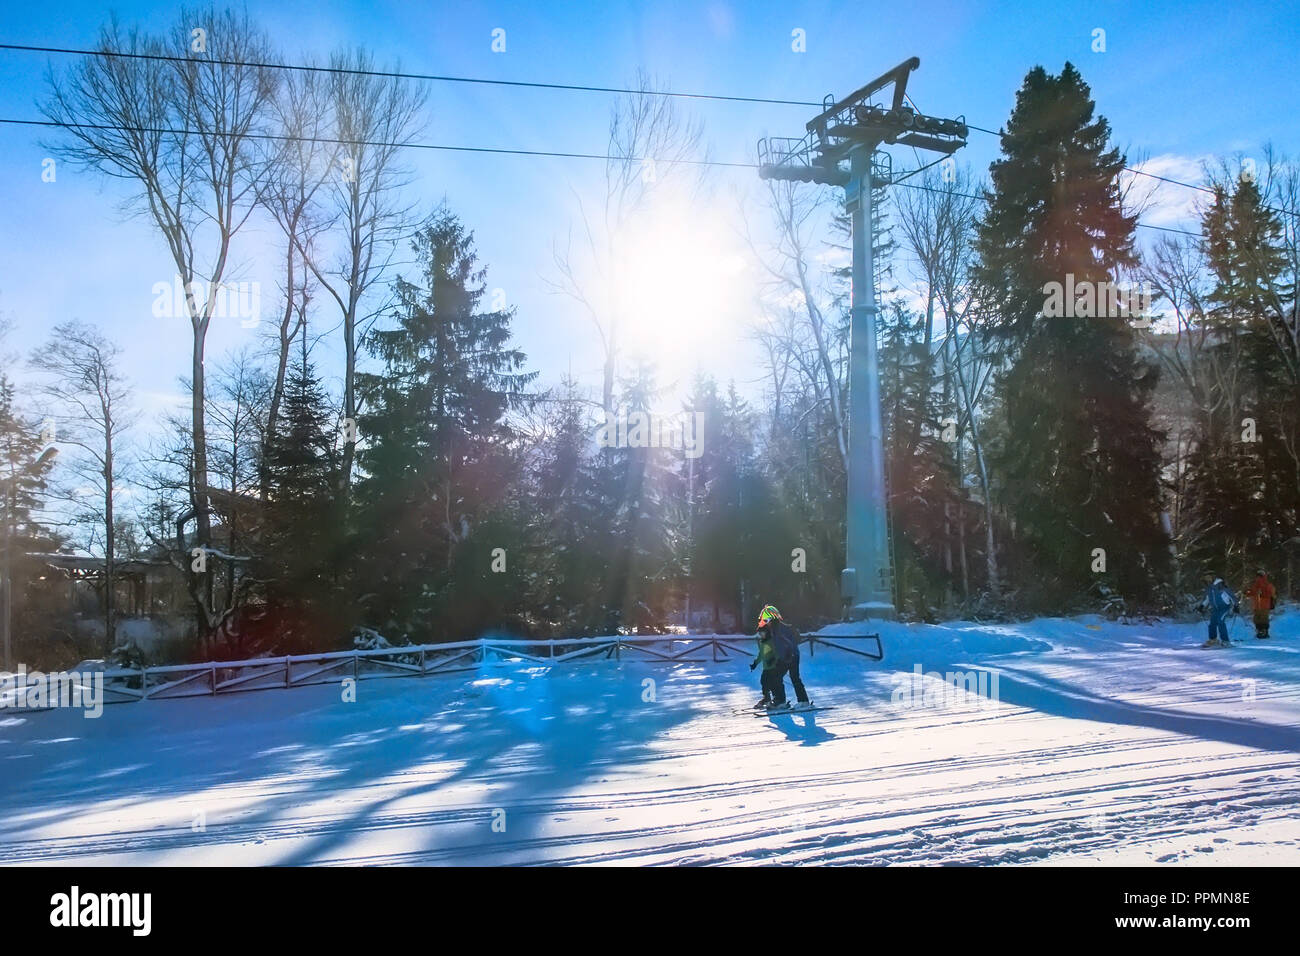 ski resort panorama with ski lift cabin, slope and snow mountains, Bulgaria - Stock Image